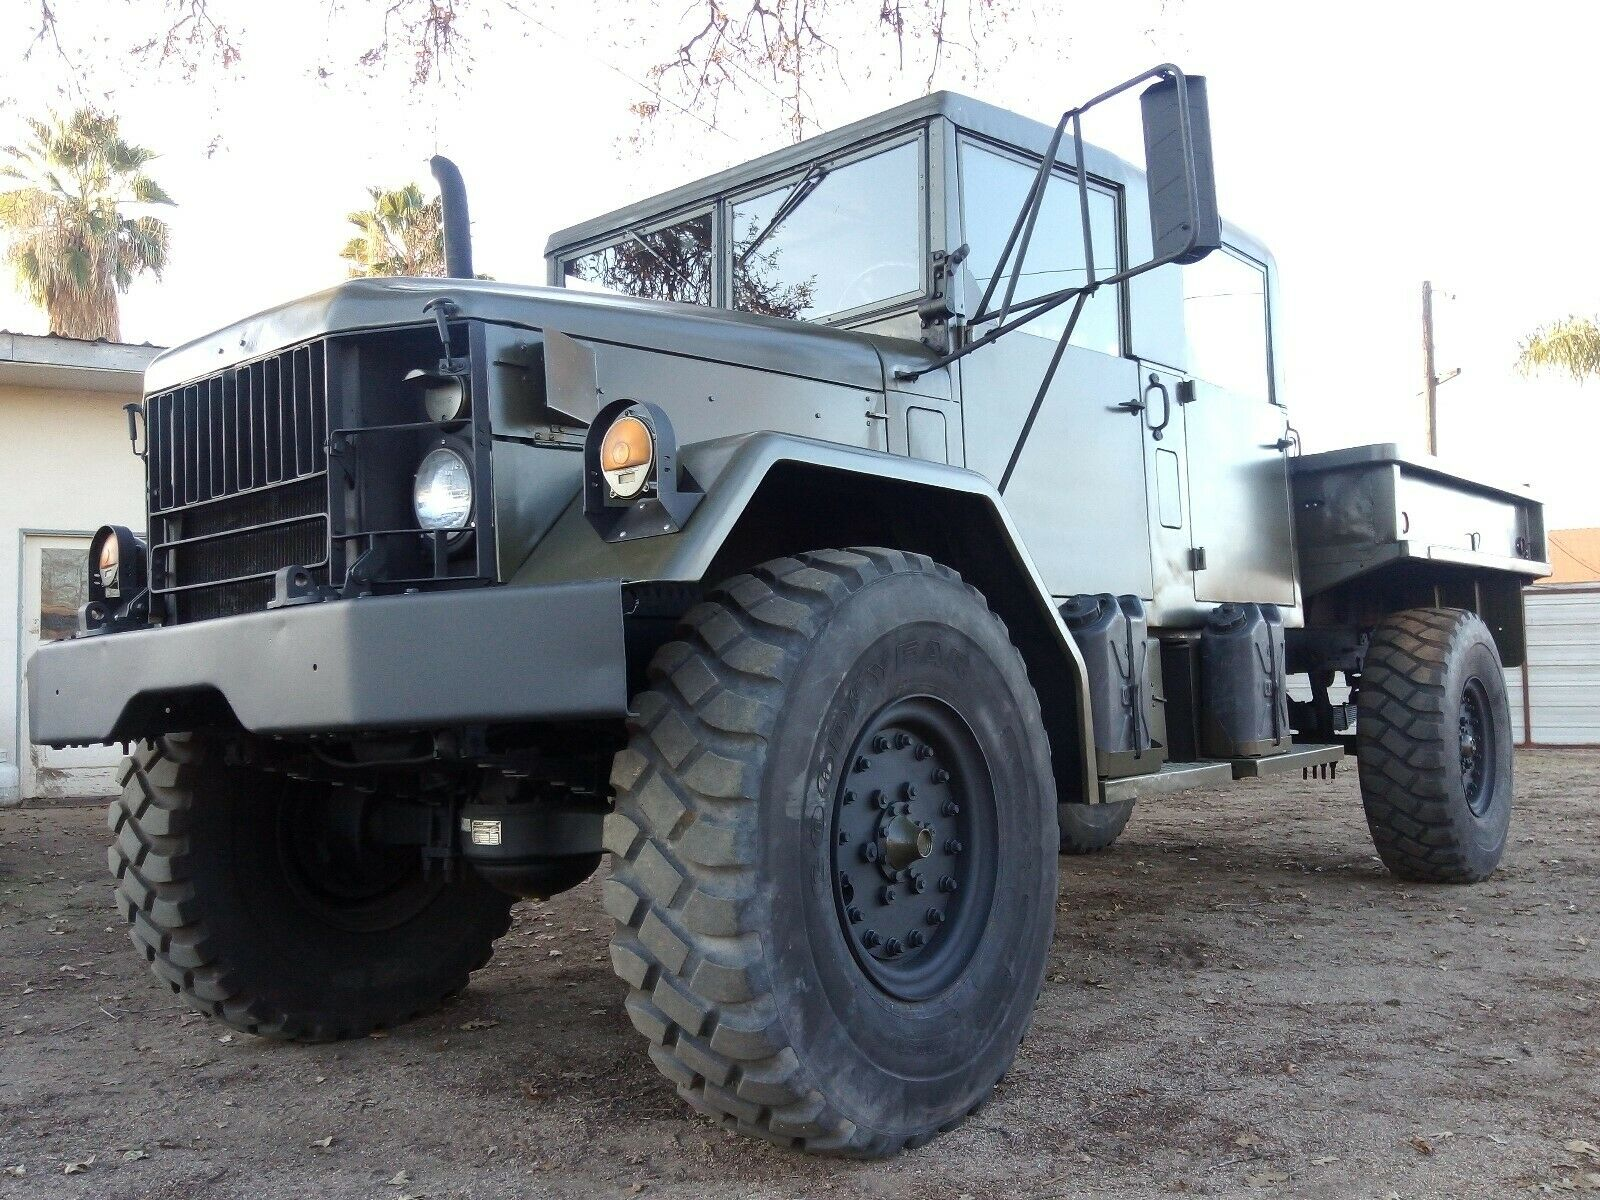 restored 1967 Jeep Kaiser M35a2 Deuce and a Half military